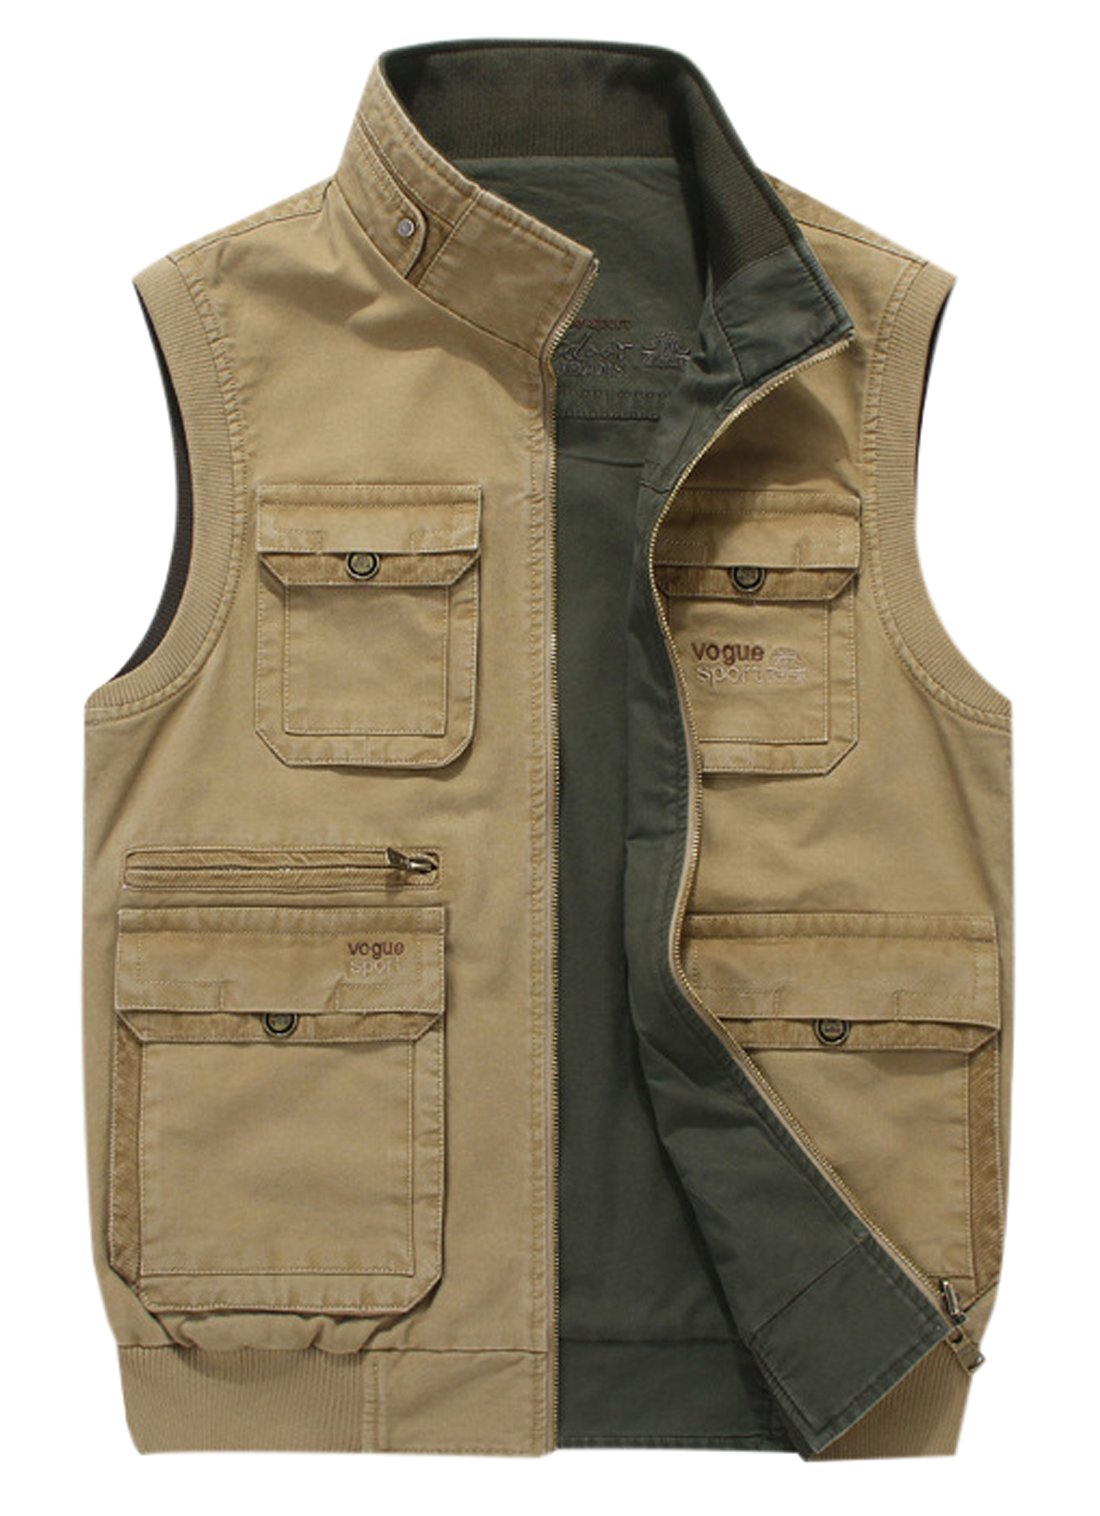 Gihuo Men's Reversible Cotton Leisure Outdoor Pockets Fish Photo Journalist Vest (M, Khaki) by Gihuo